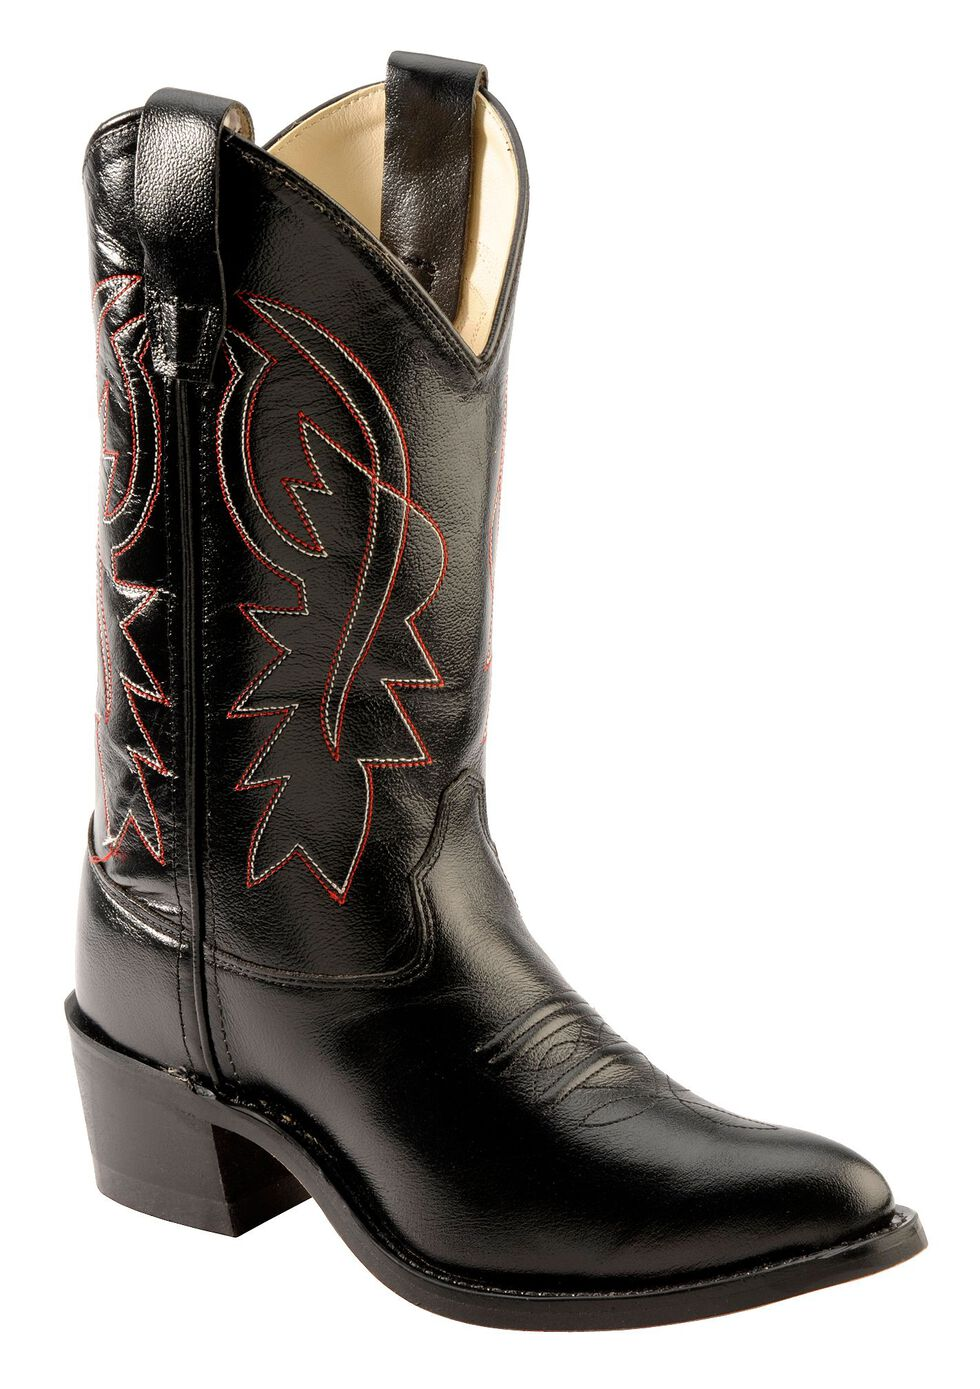 Old West Youth Boys' Corona Cowboy Boots - Pointed Toe, Black, hi-res